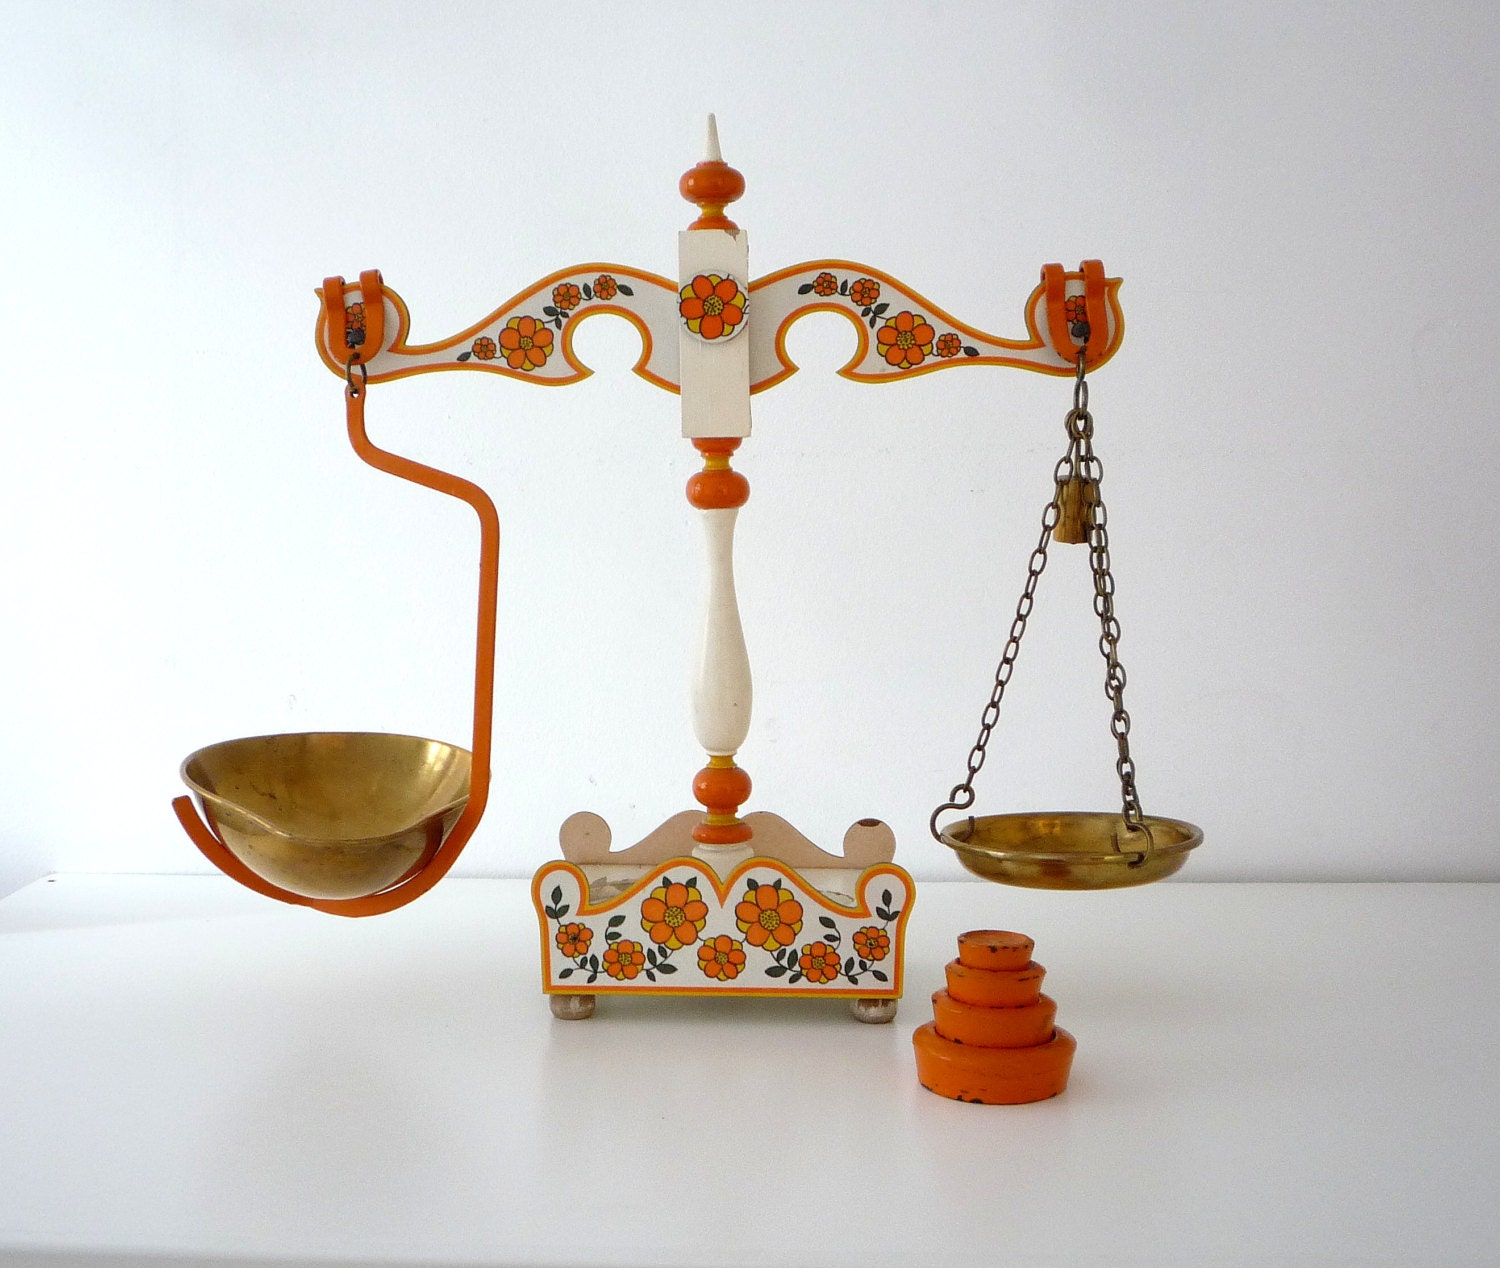 Rustic balance scale vintage kitchen balance by for Rustic kitchen scale